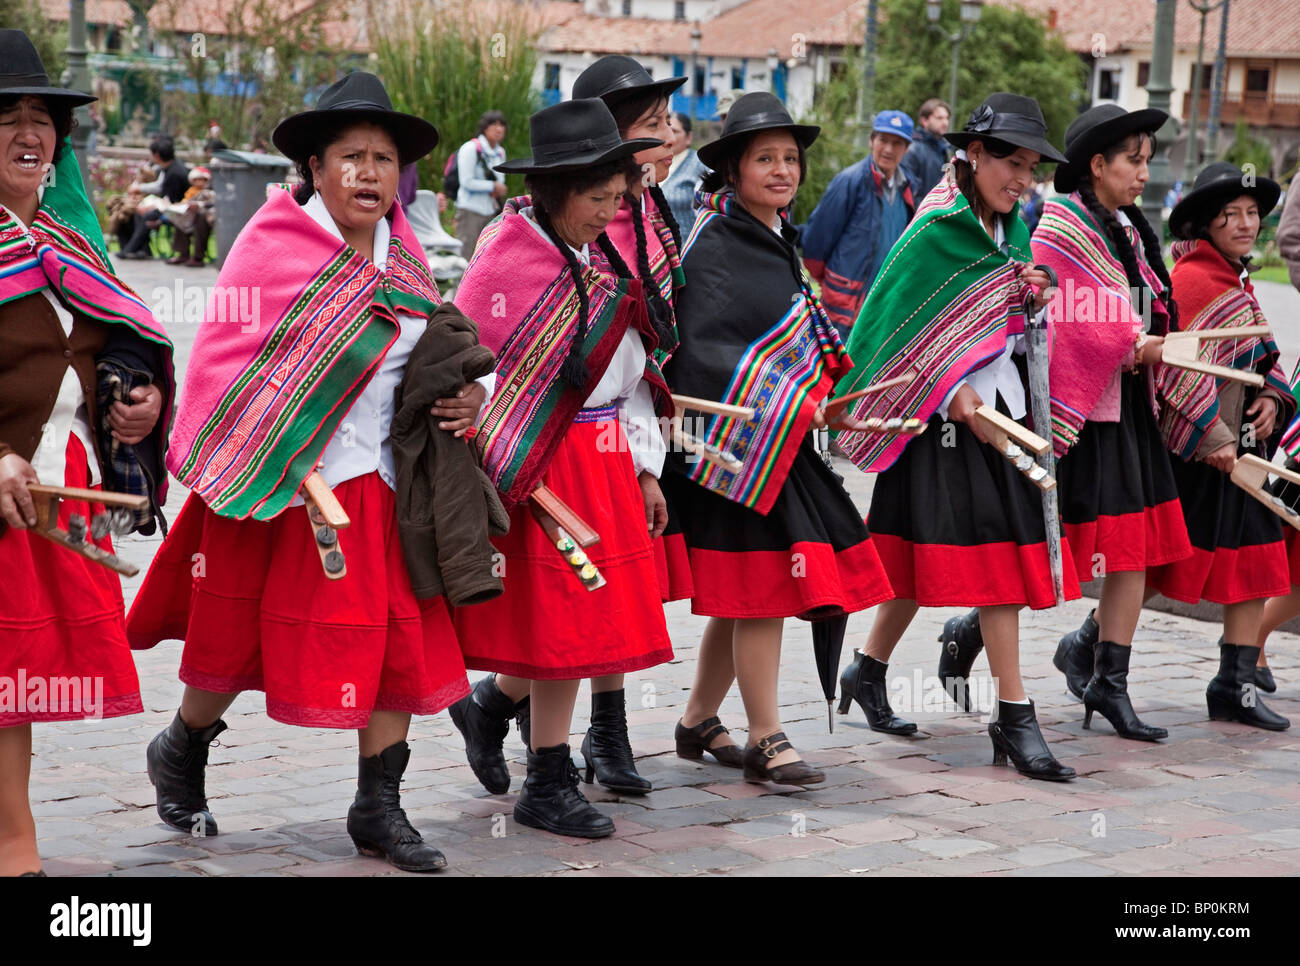 Christmas Day Parade.Peru Dancers For Parade On Christmas Day In Cusco S Square